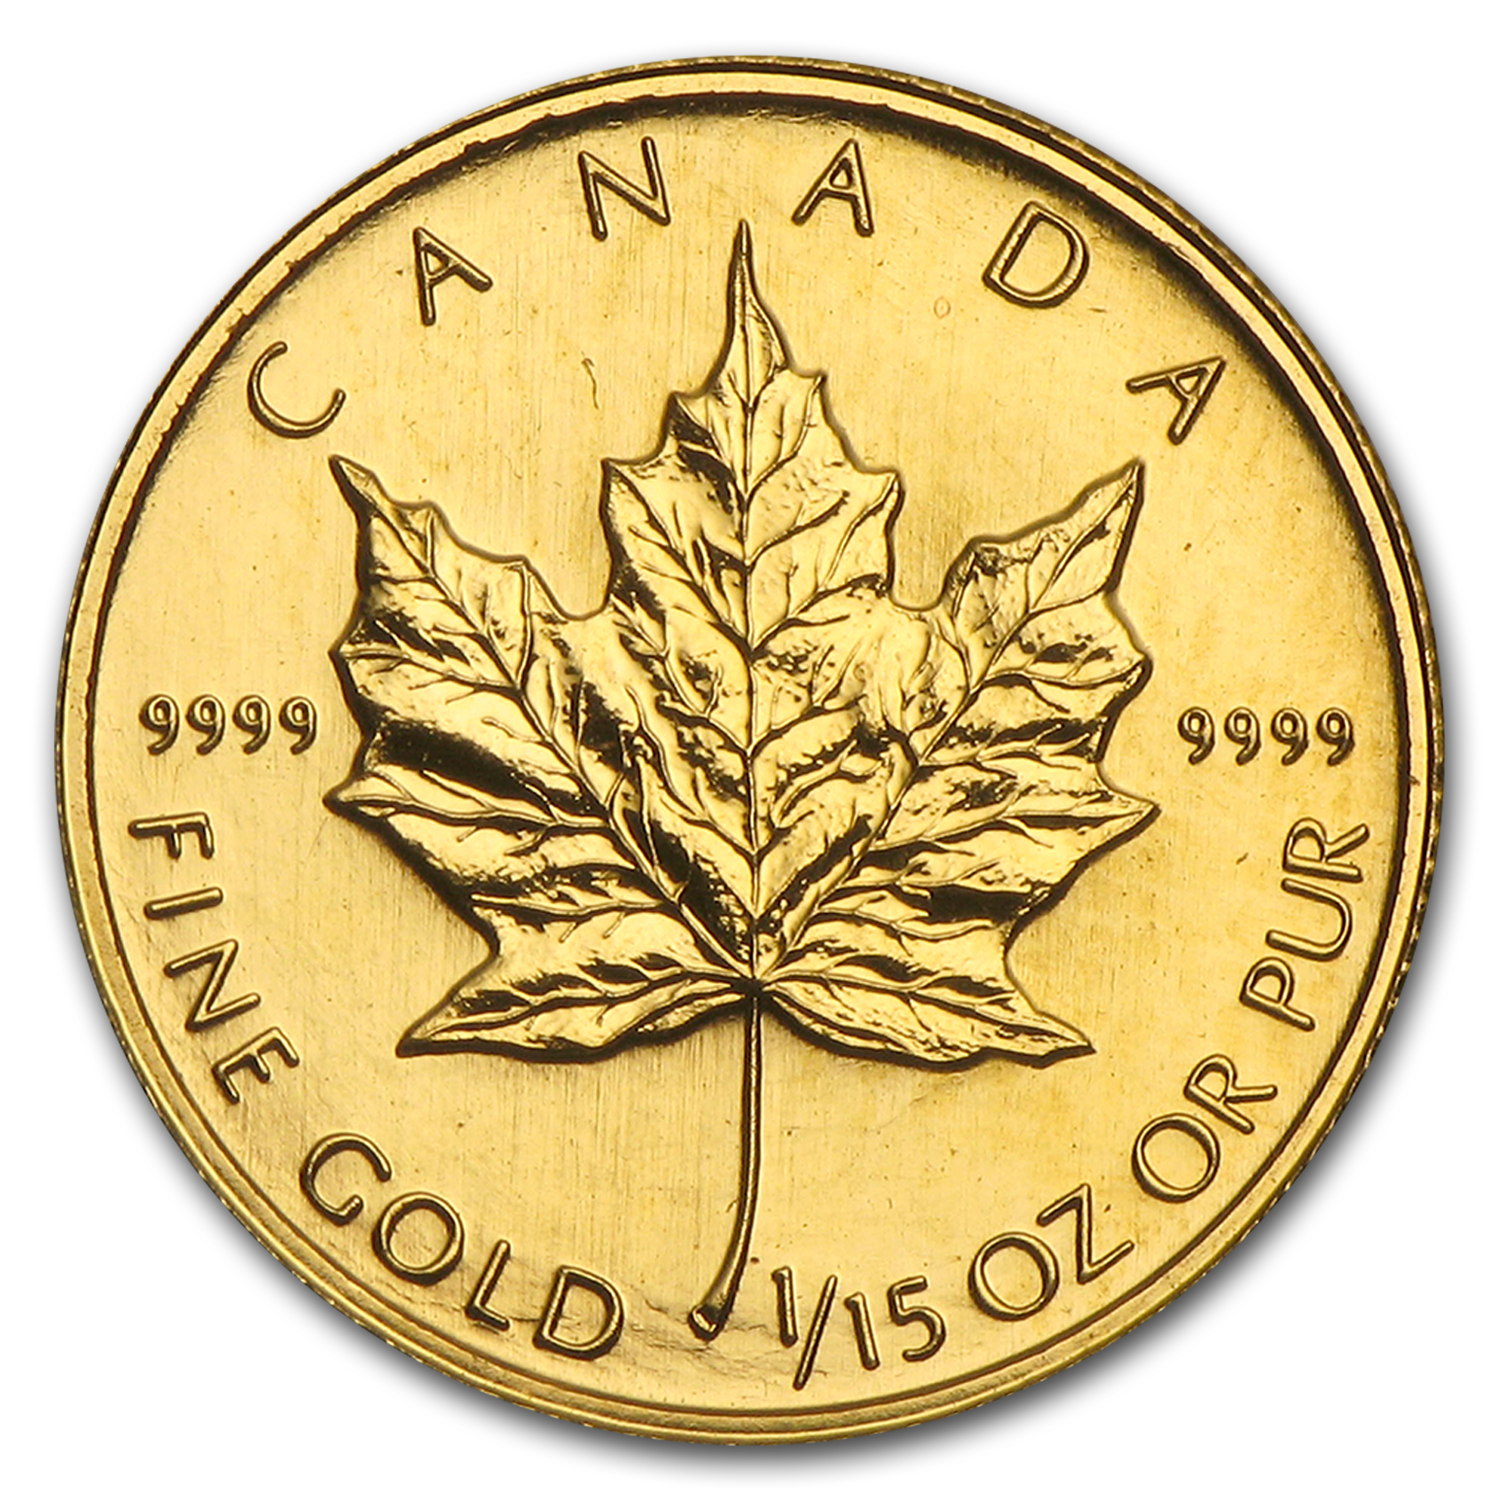 1994 1/15 oz Canadian Gold Maple Leaf